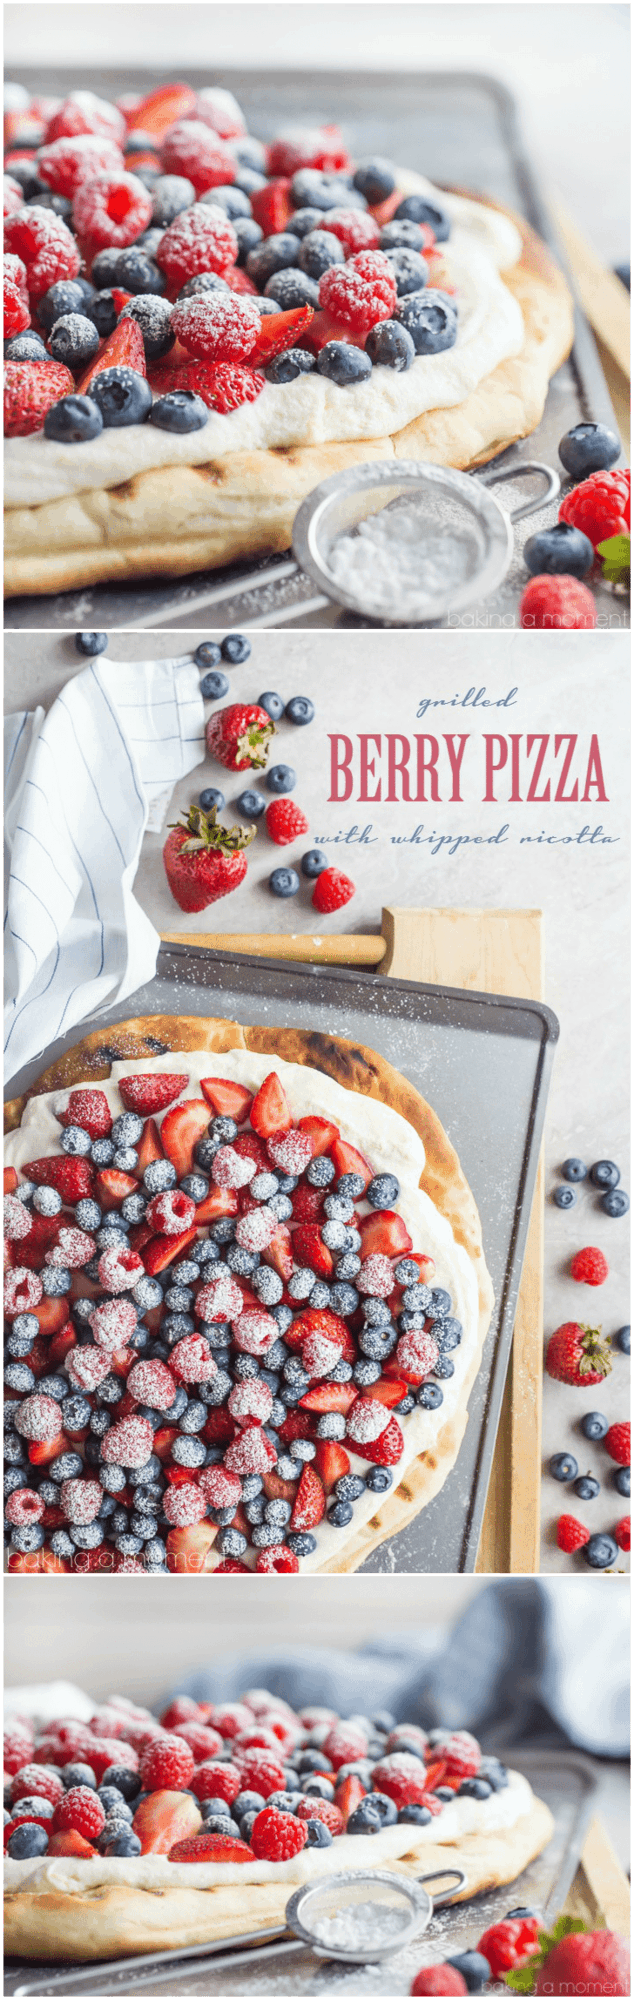 Such a great summer snack or dessert! This honey wheat pizza whips up in a snap with no rise time, and the lightly sweet and fluffy whipped ricotta is so good with fresh berries!